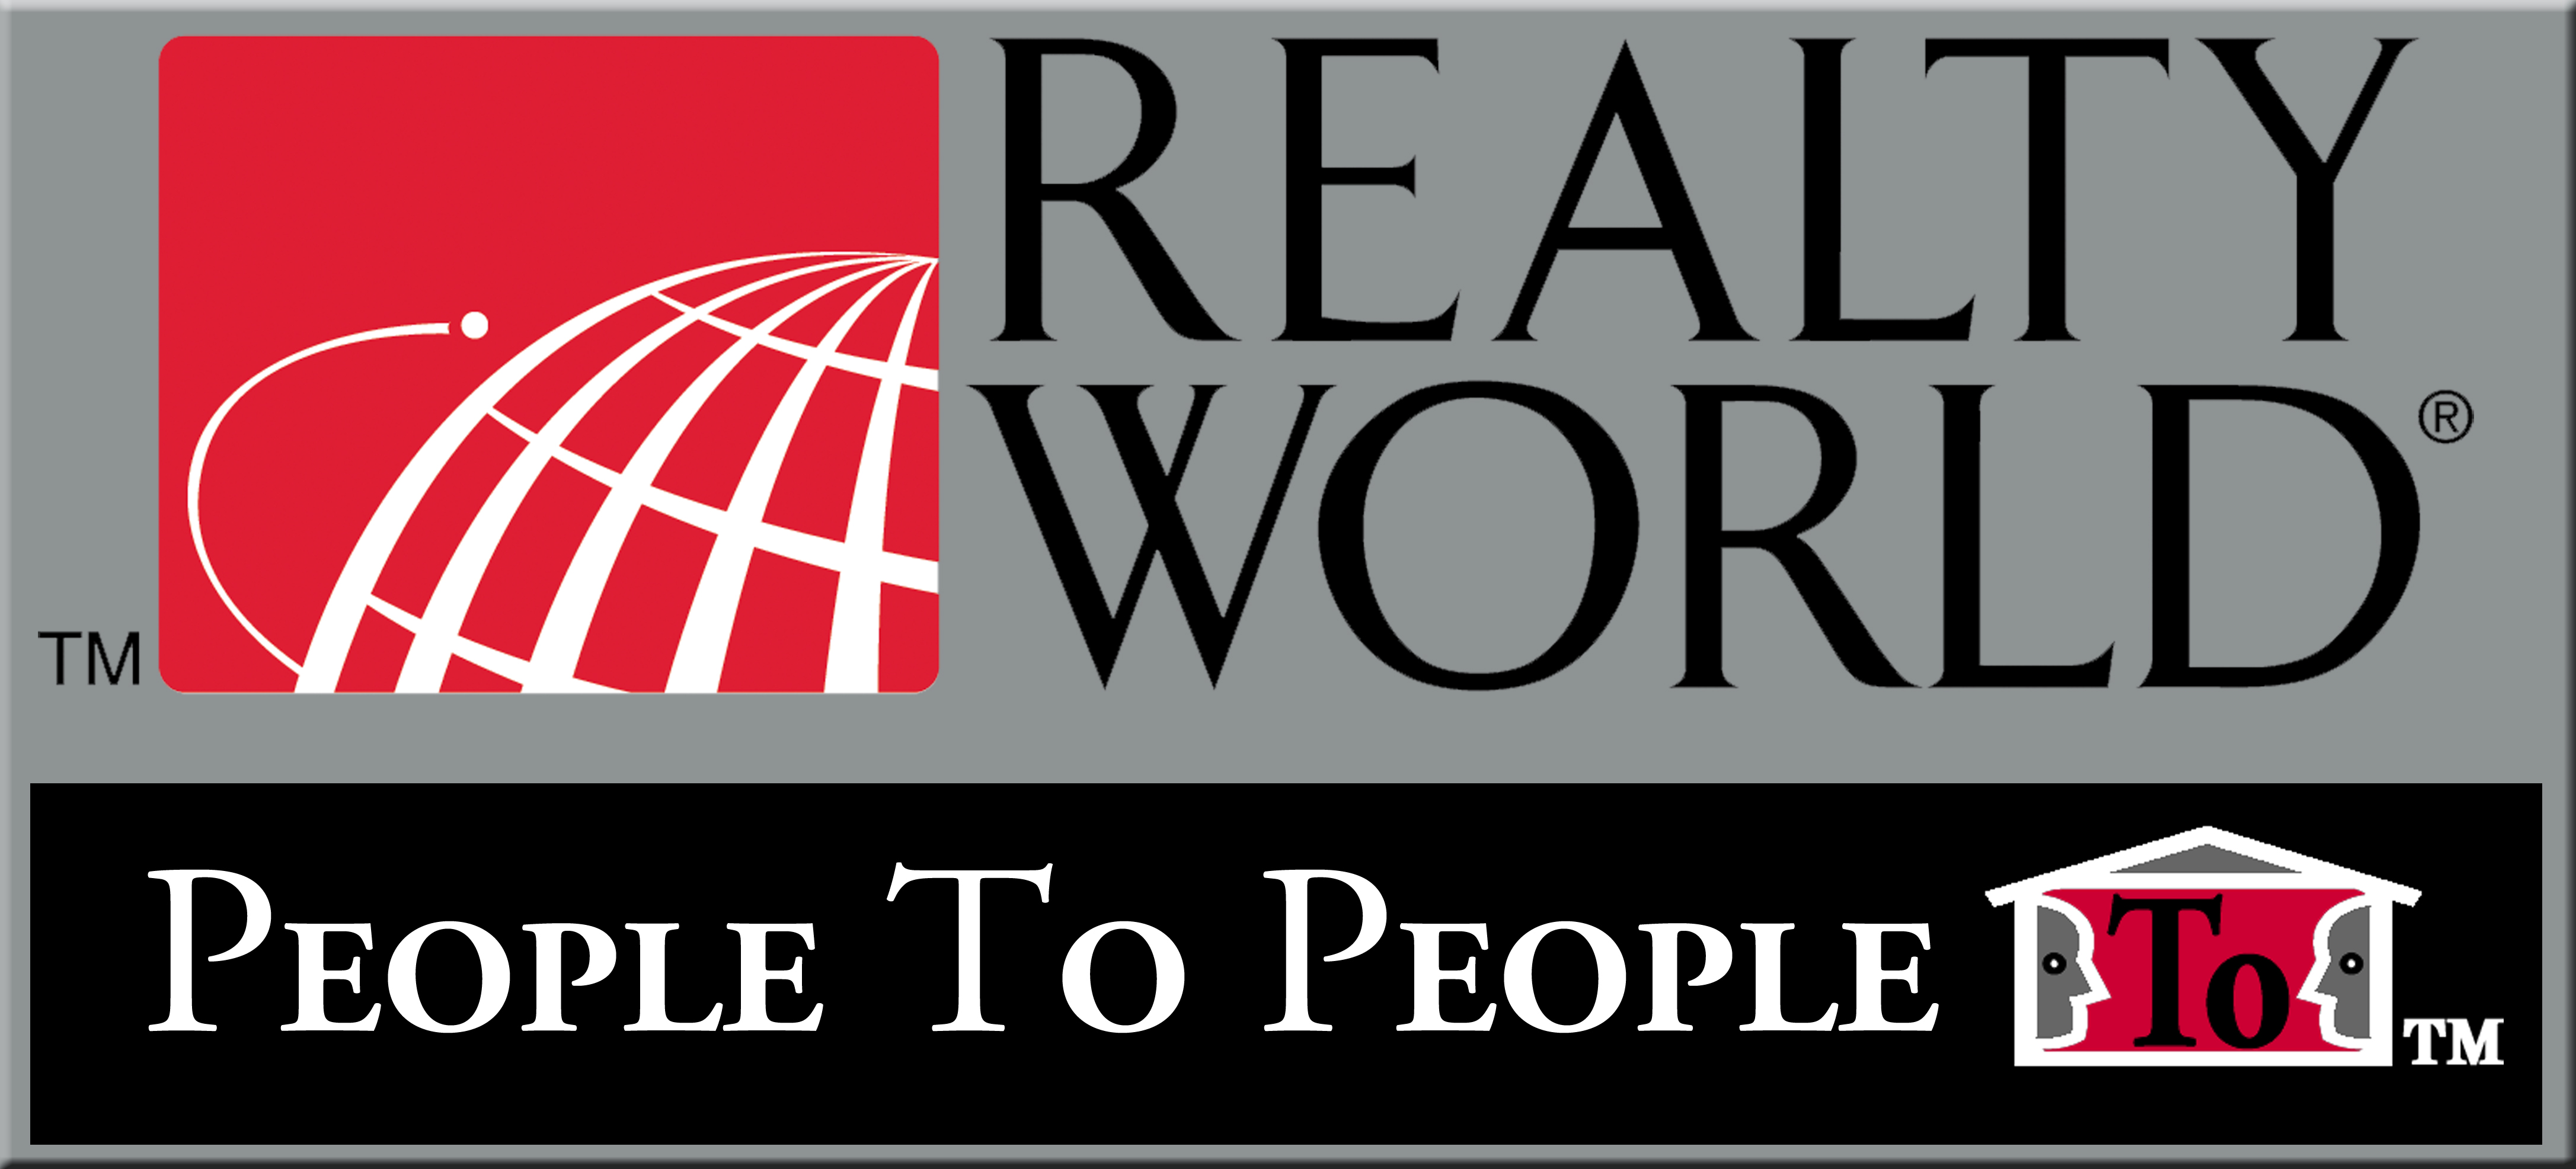 Realty World - People to People